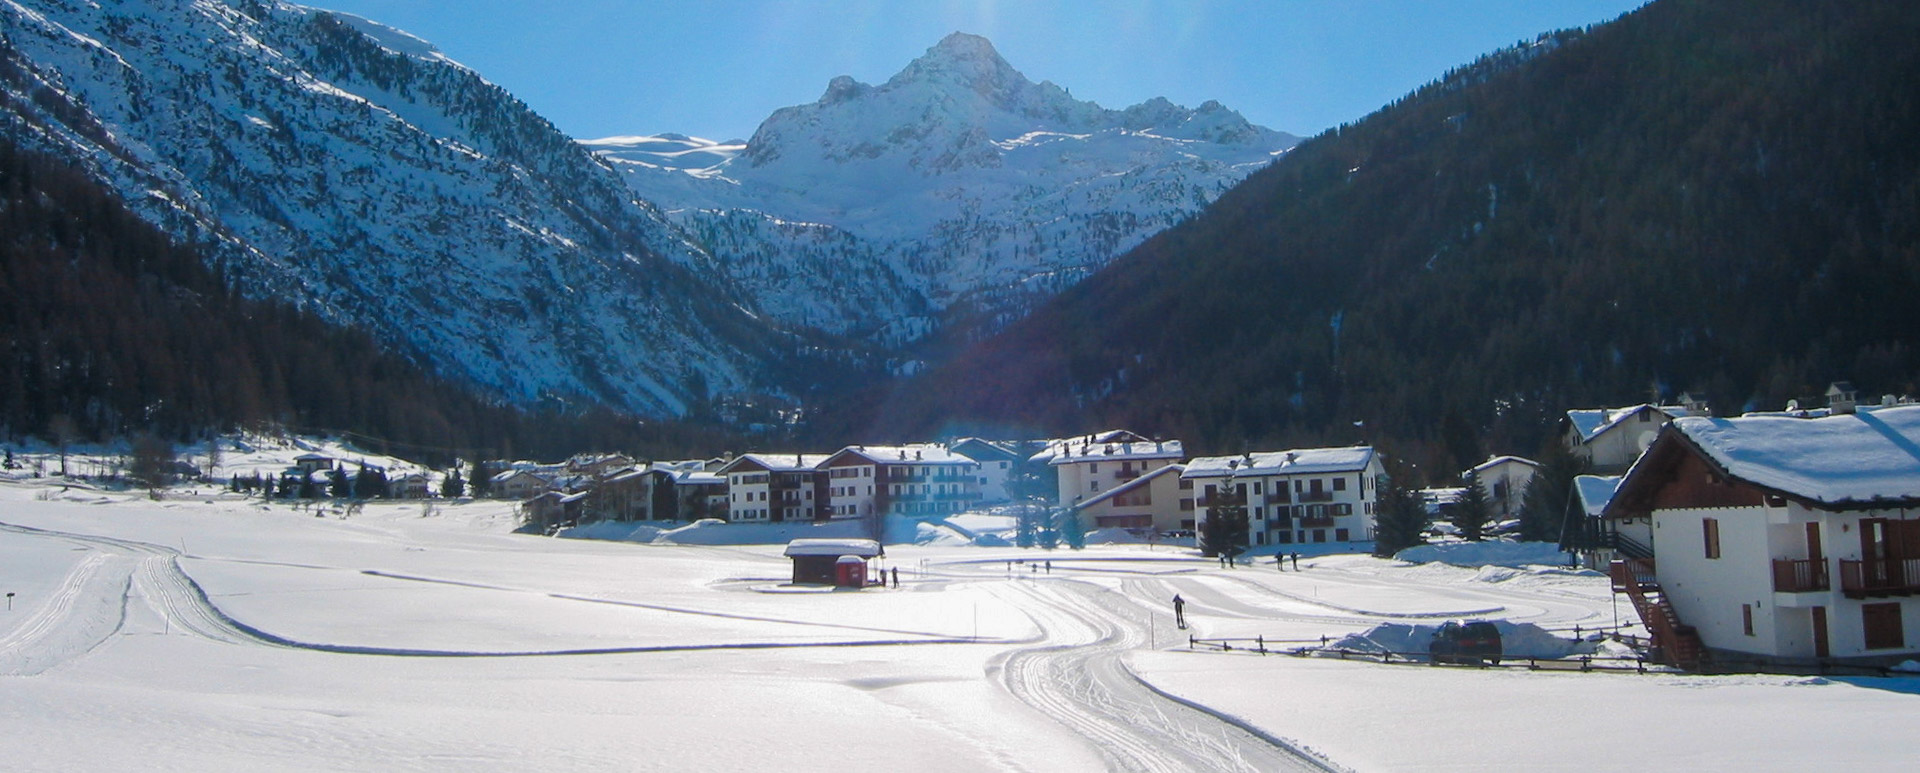 Cross-country ski runs zig-zag throughout the ski resort of La Thuile